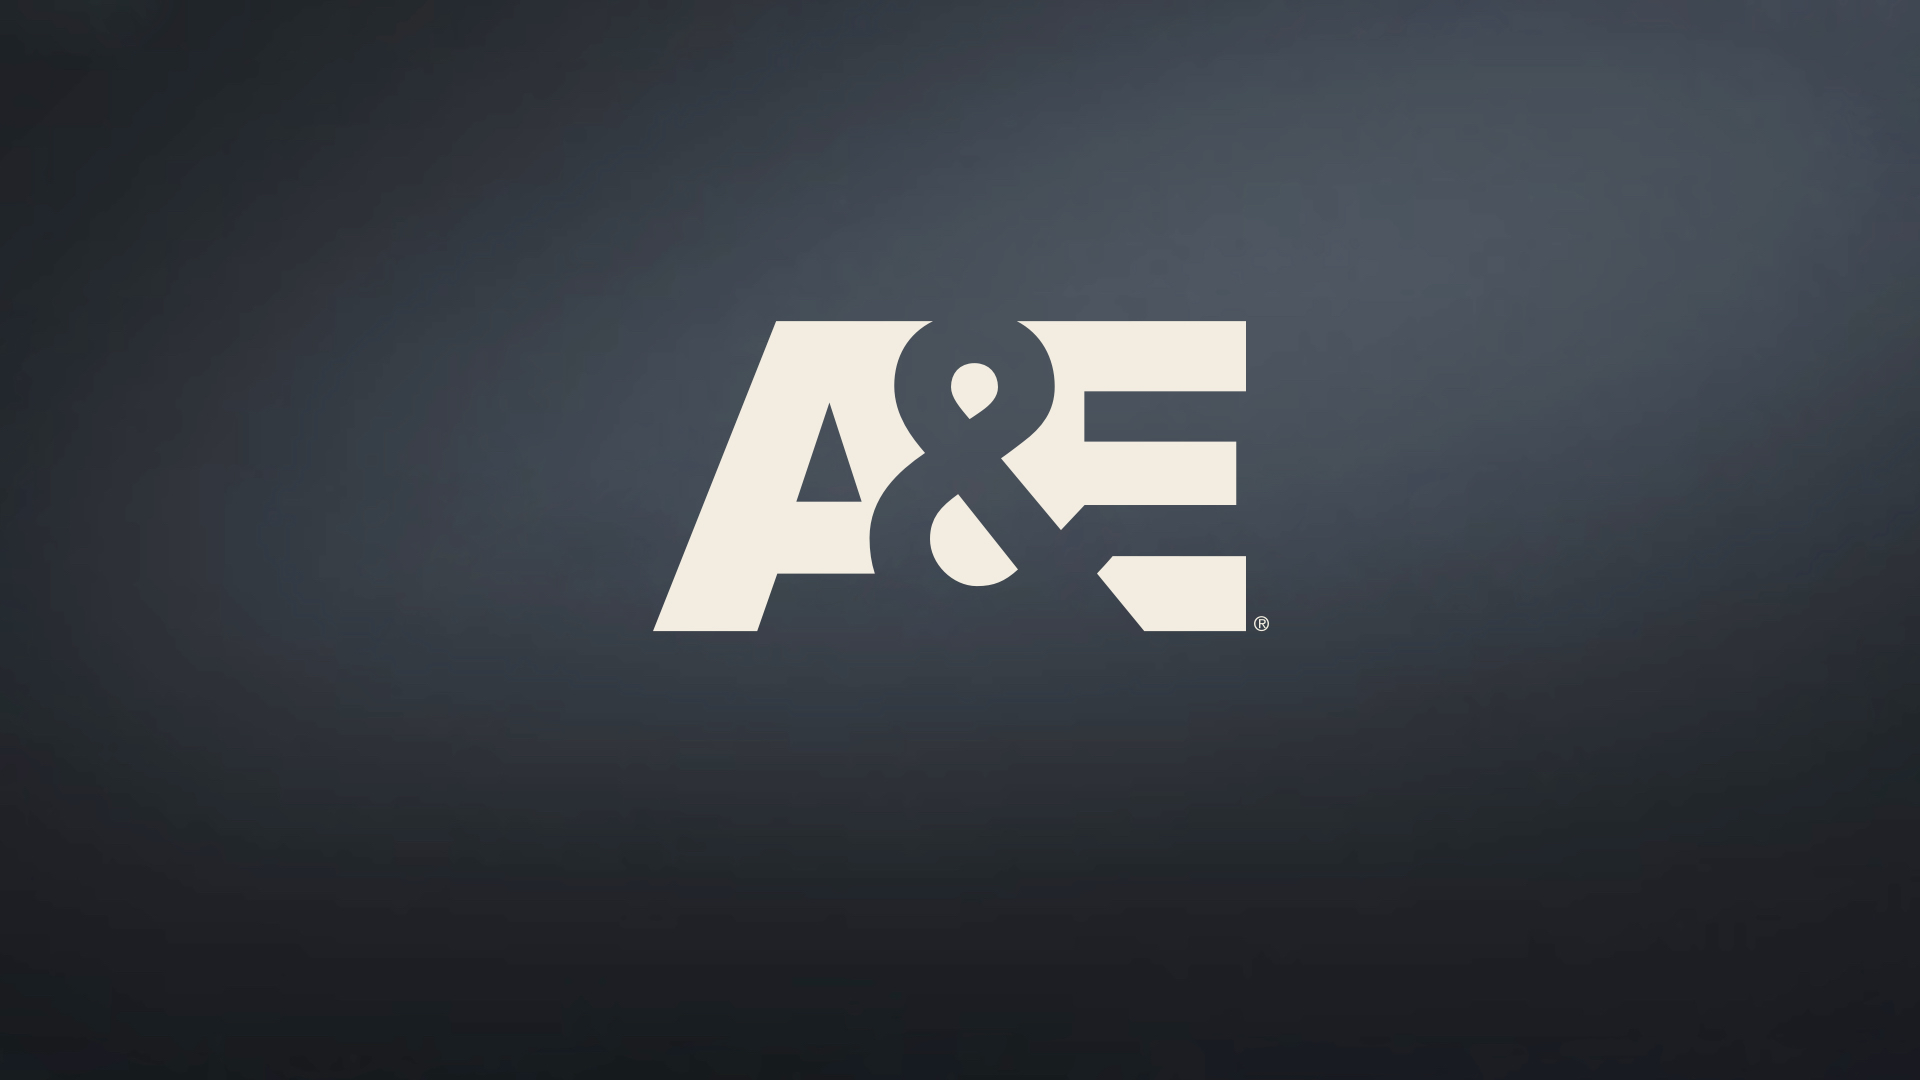 A&E, Bates Motel will be the Last Series and non Fiction Programming will Double